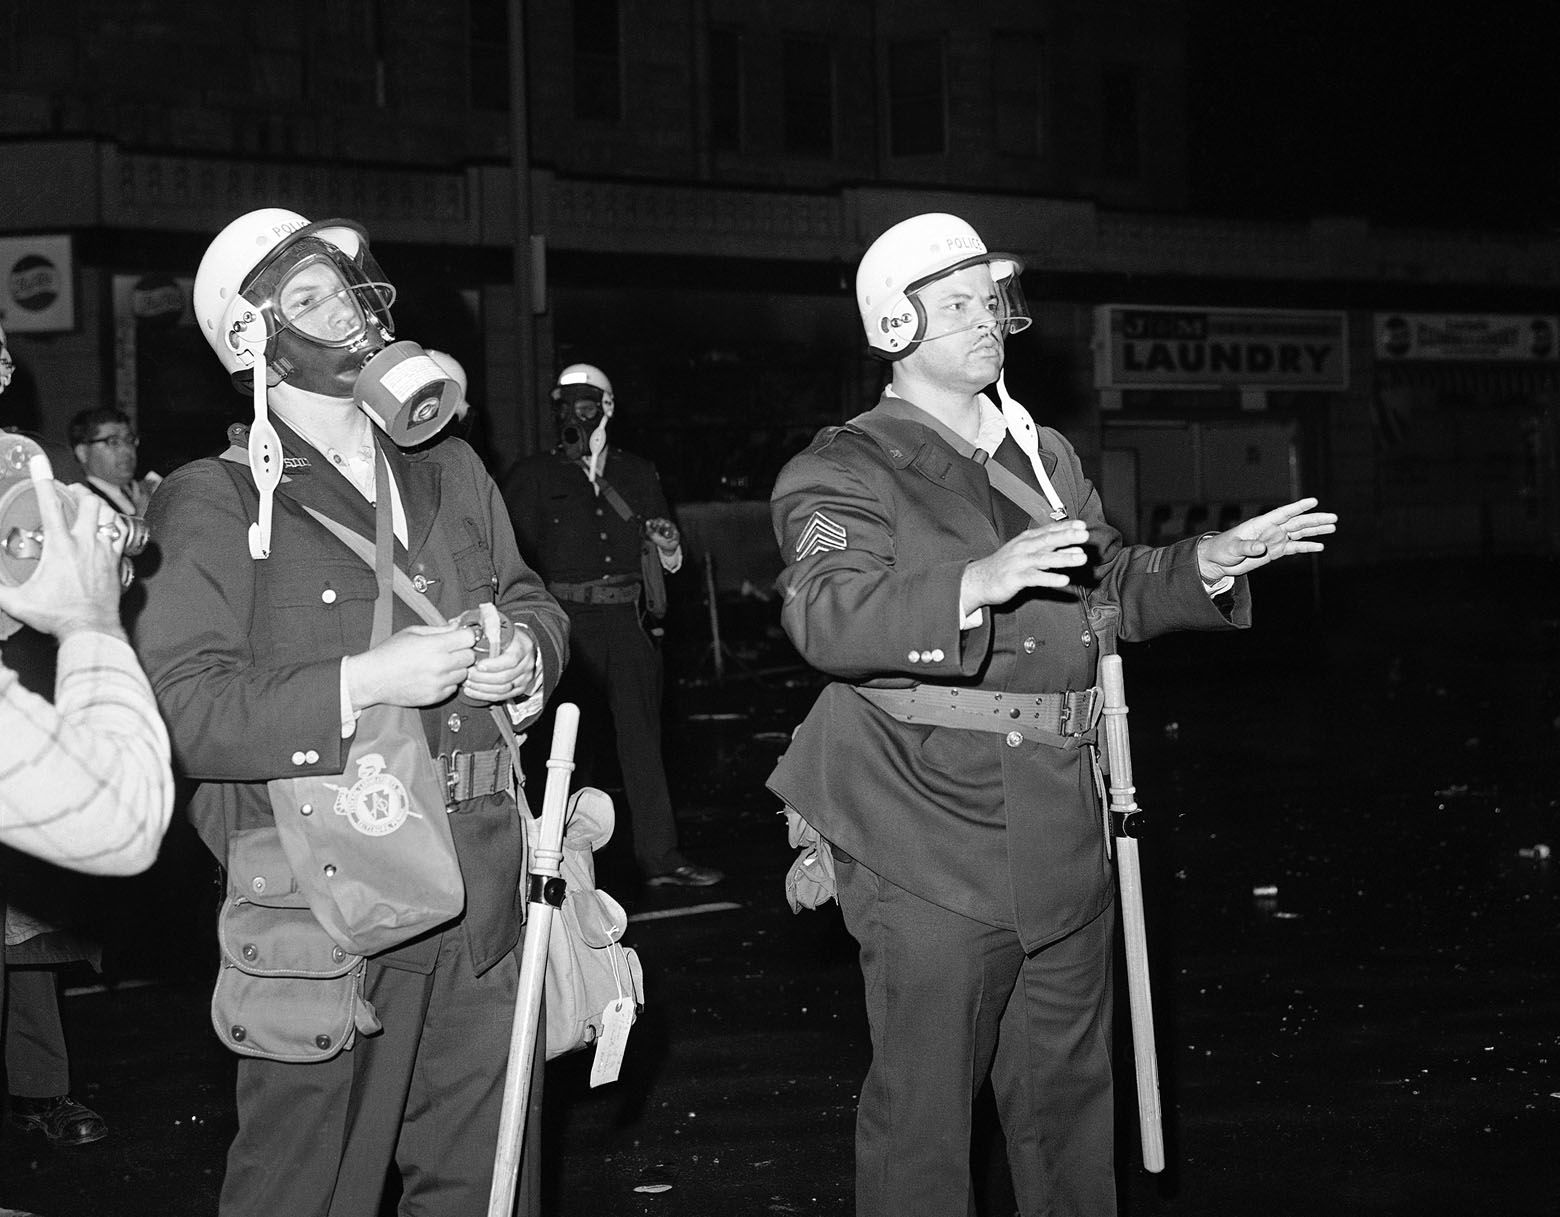 Police fire tear gas to scatter crowd at 14th and Euclid Streets in an African American section of northwest Washington on April 5, 1968. Stores were looted and fires started in reaction to assassination of Dr. Martin Luther King Jr. (AP Photo/Charles W. Harrity)